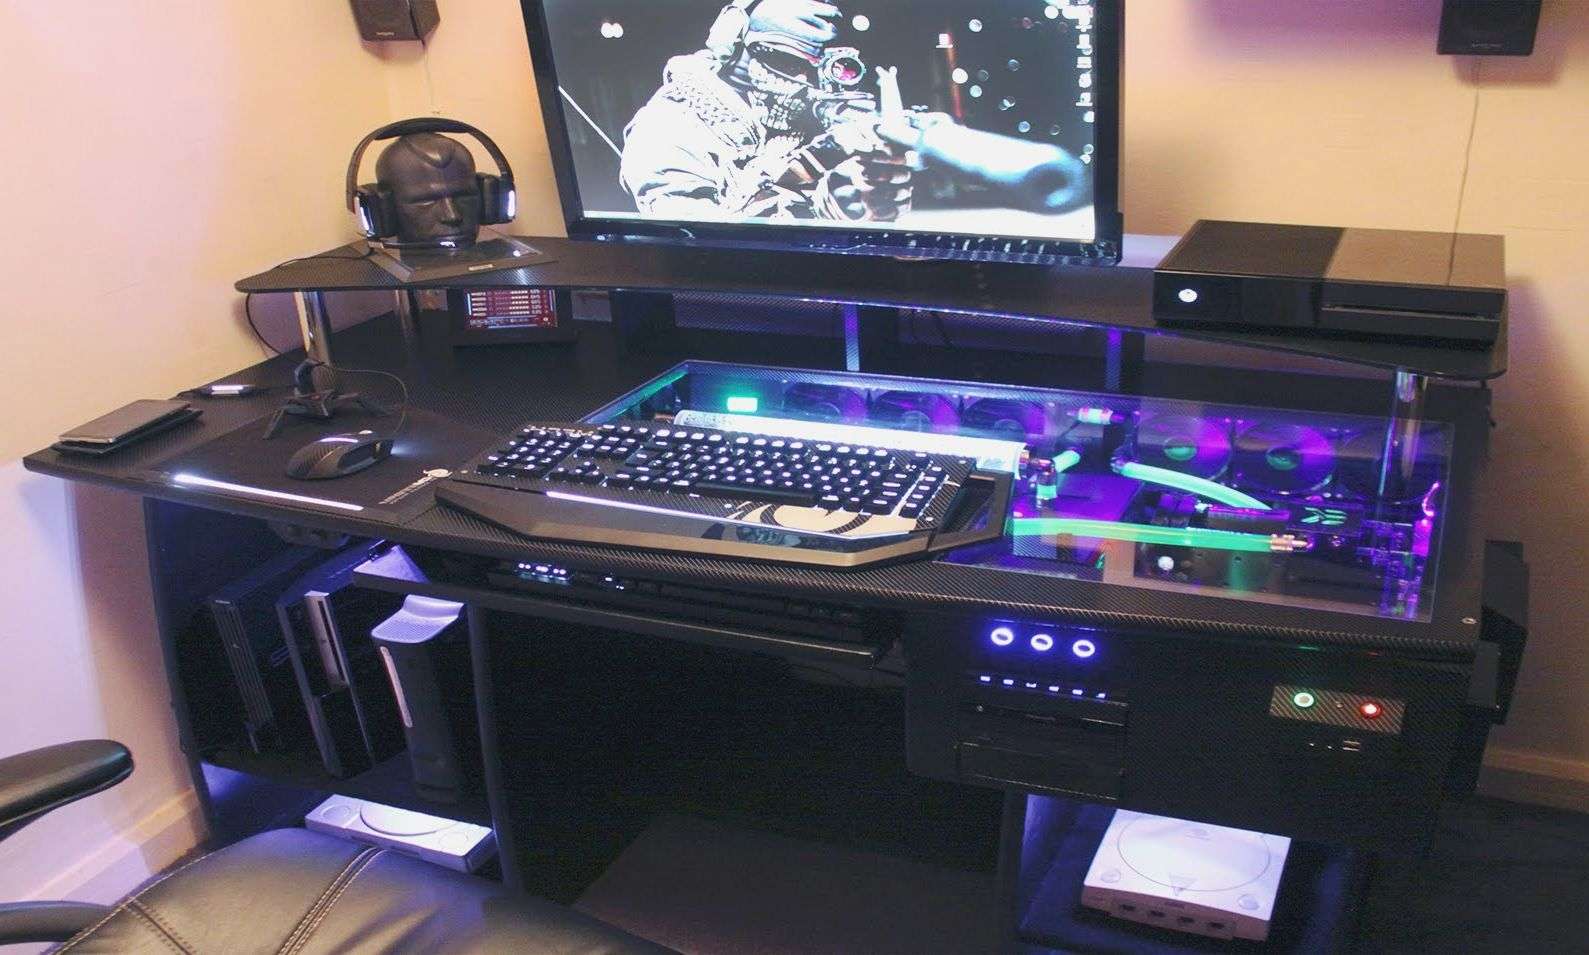 Desk Computer Case Ultimate Gaming Pc Custom Desk Build Log Youtube Hd Wallpaper Frsh Gaming Computer Desk Custom Computer Desk Computer Desk Plans